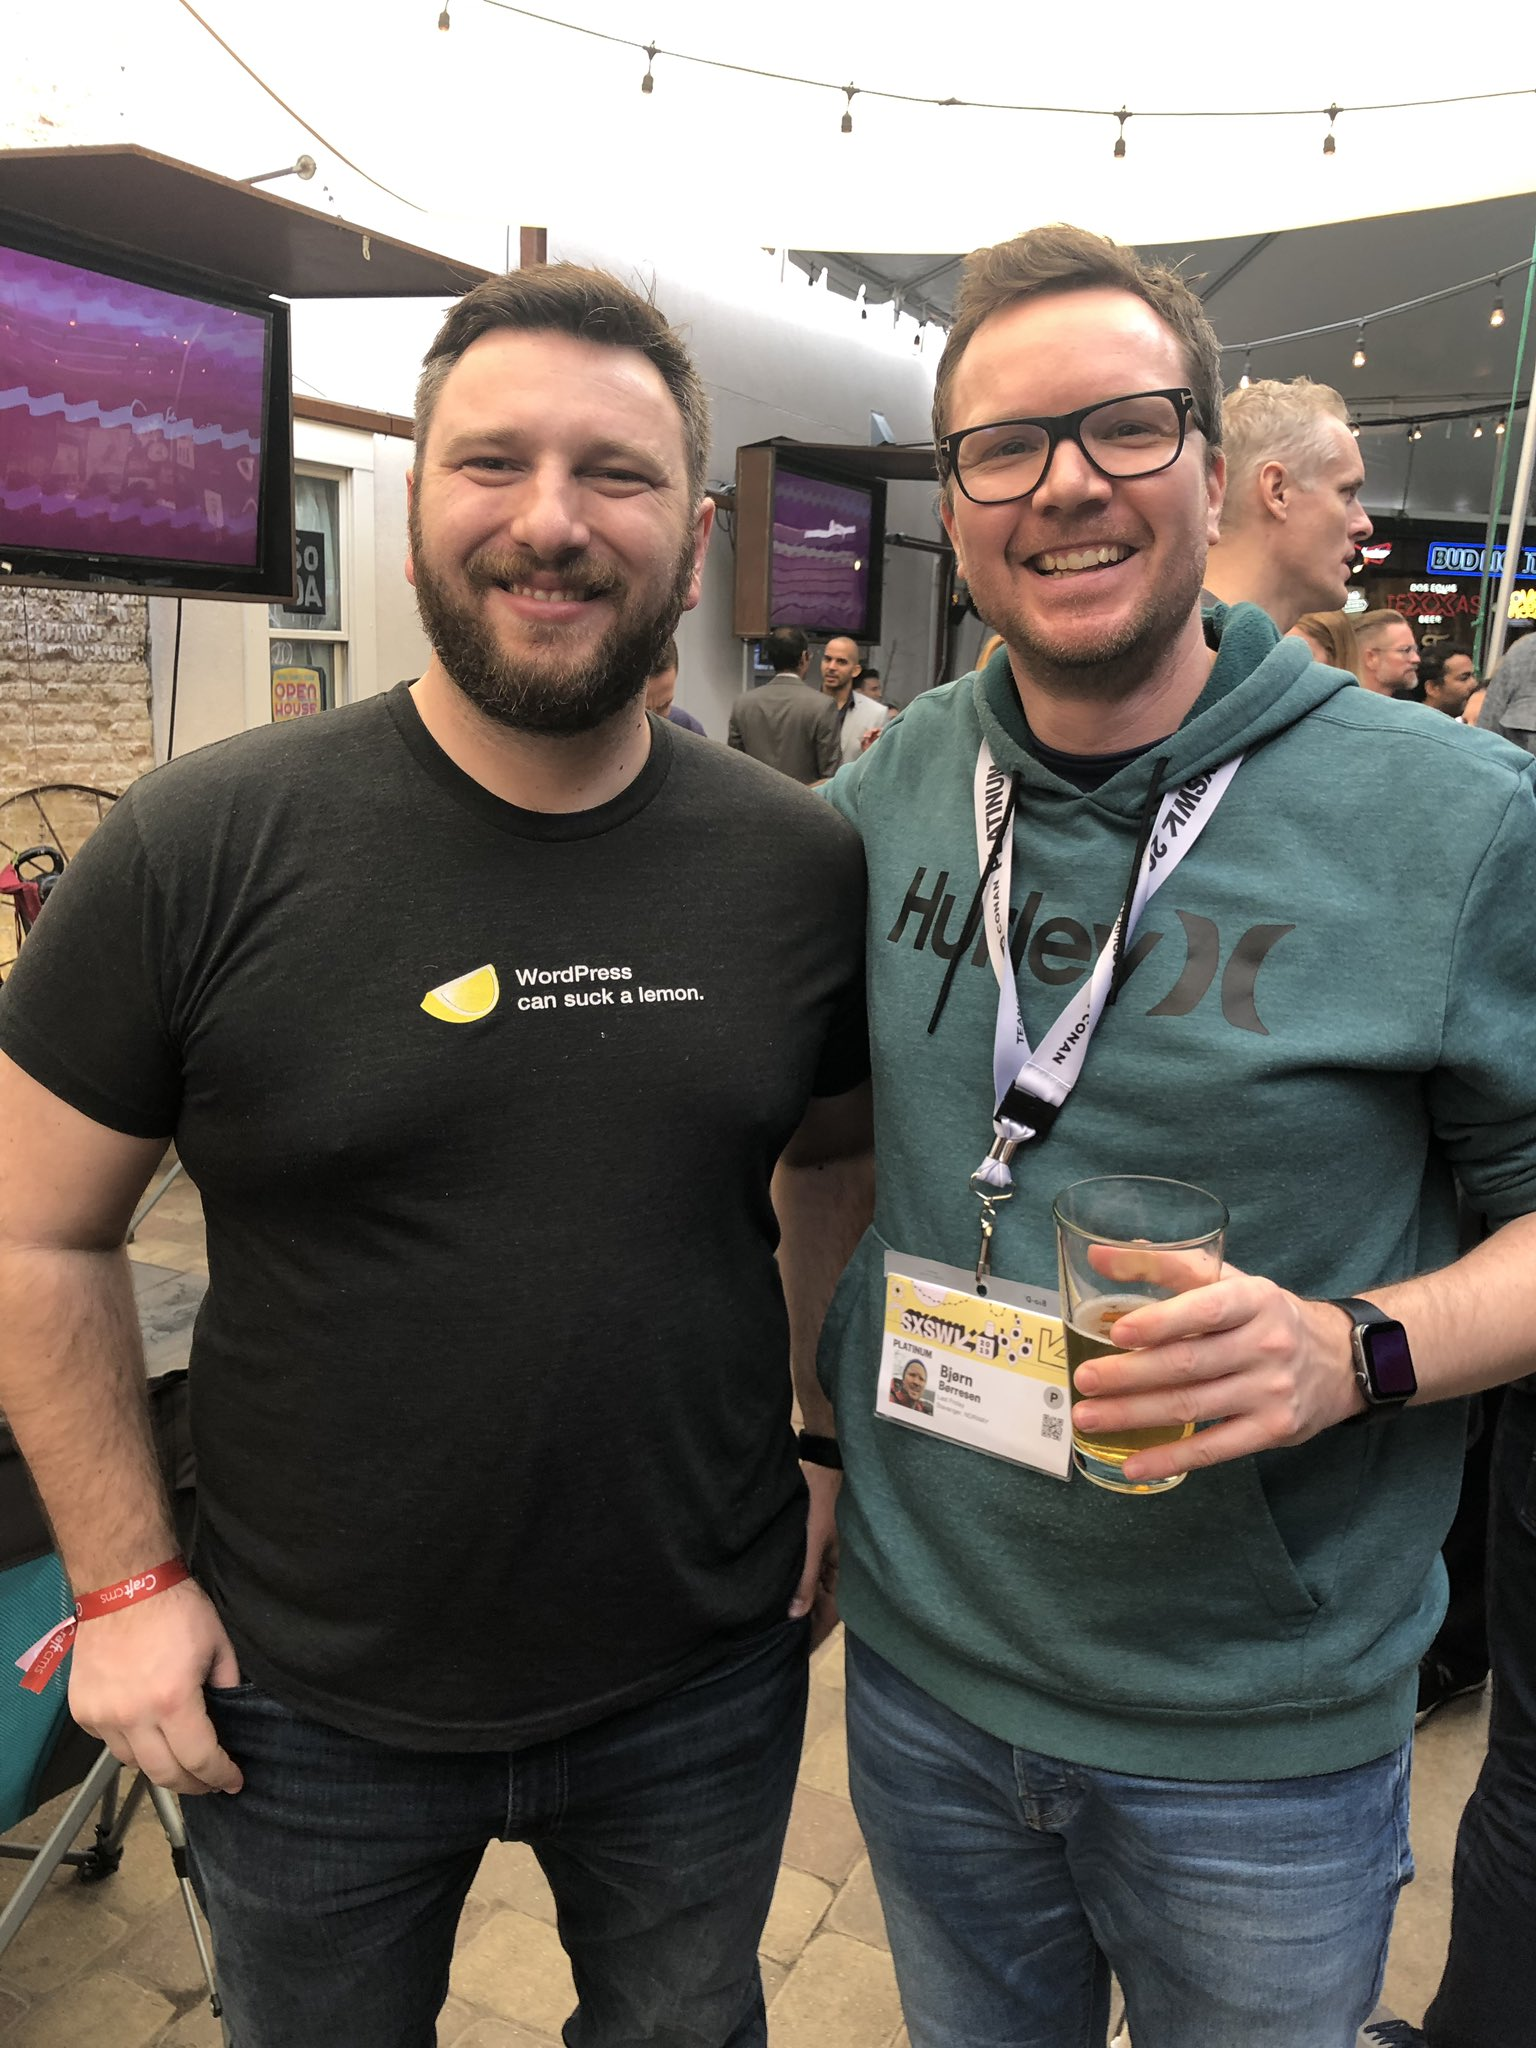 Look who I found yesterday at #SXSW19! Nice to meet you again @brandonkelly✌️and thanks @PixelAndTonic for the IPAs 🍻#craftcms 📈 https://t.co/QnkXbsw8zl